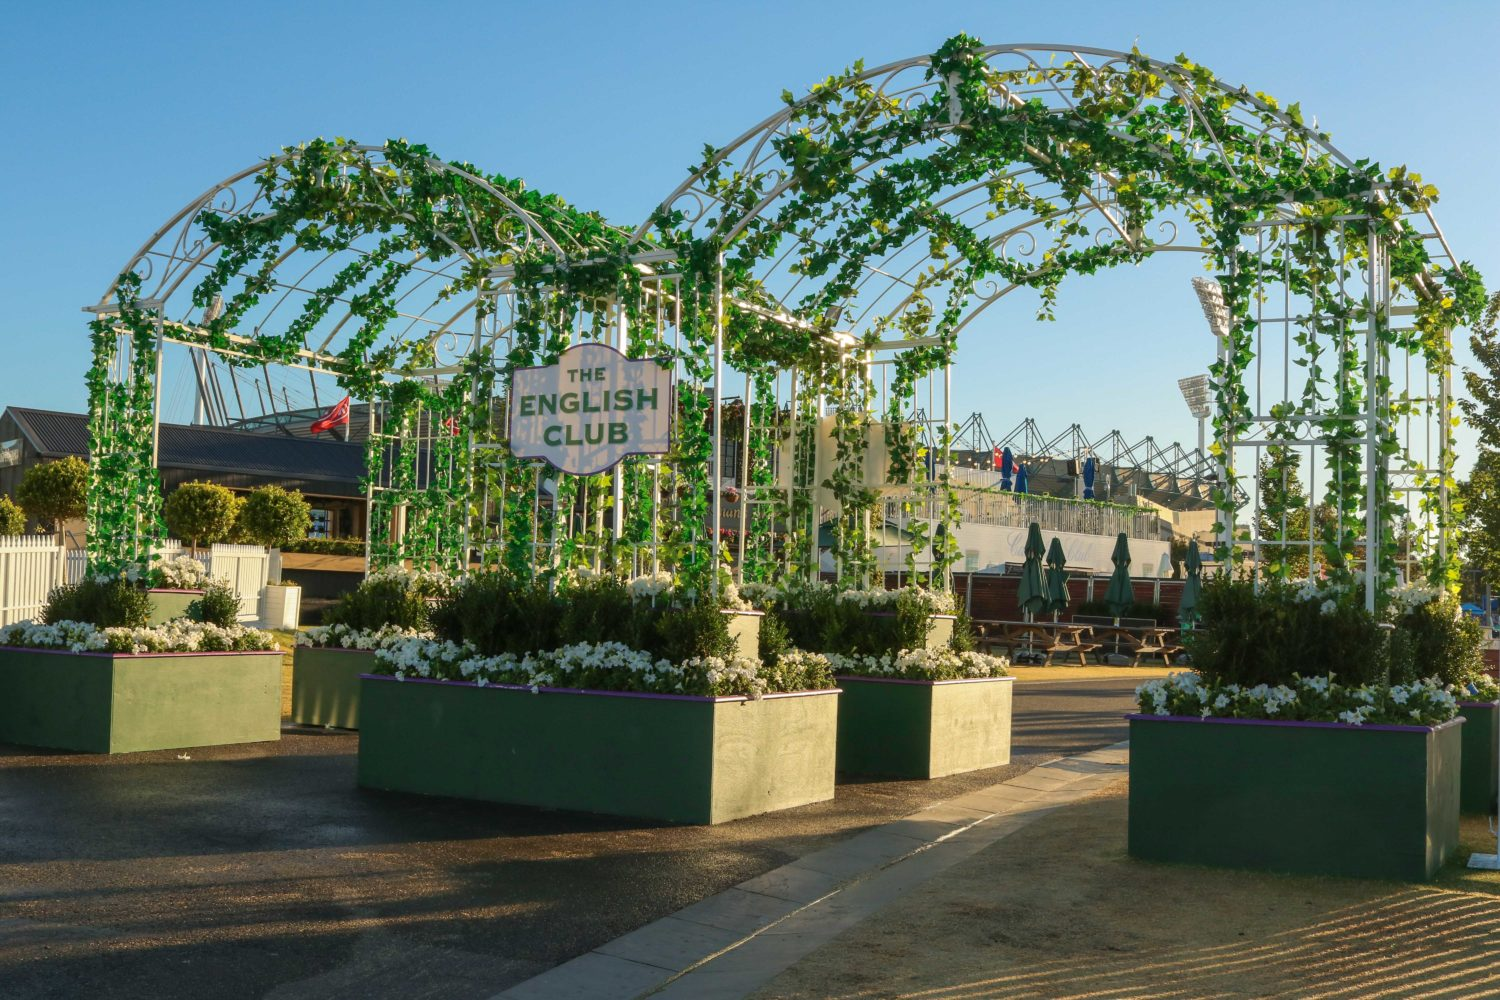 Styling english club petunia buxus event plants melbourne hire